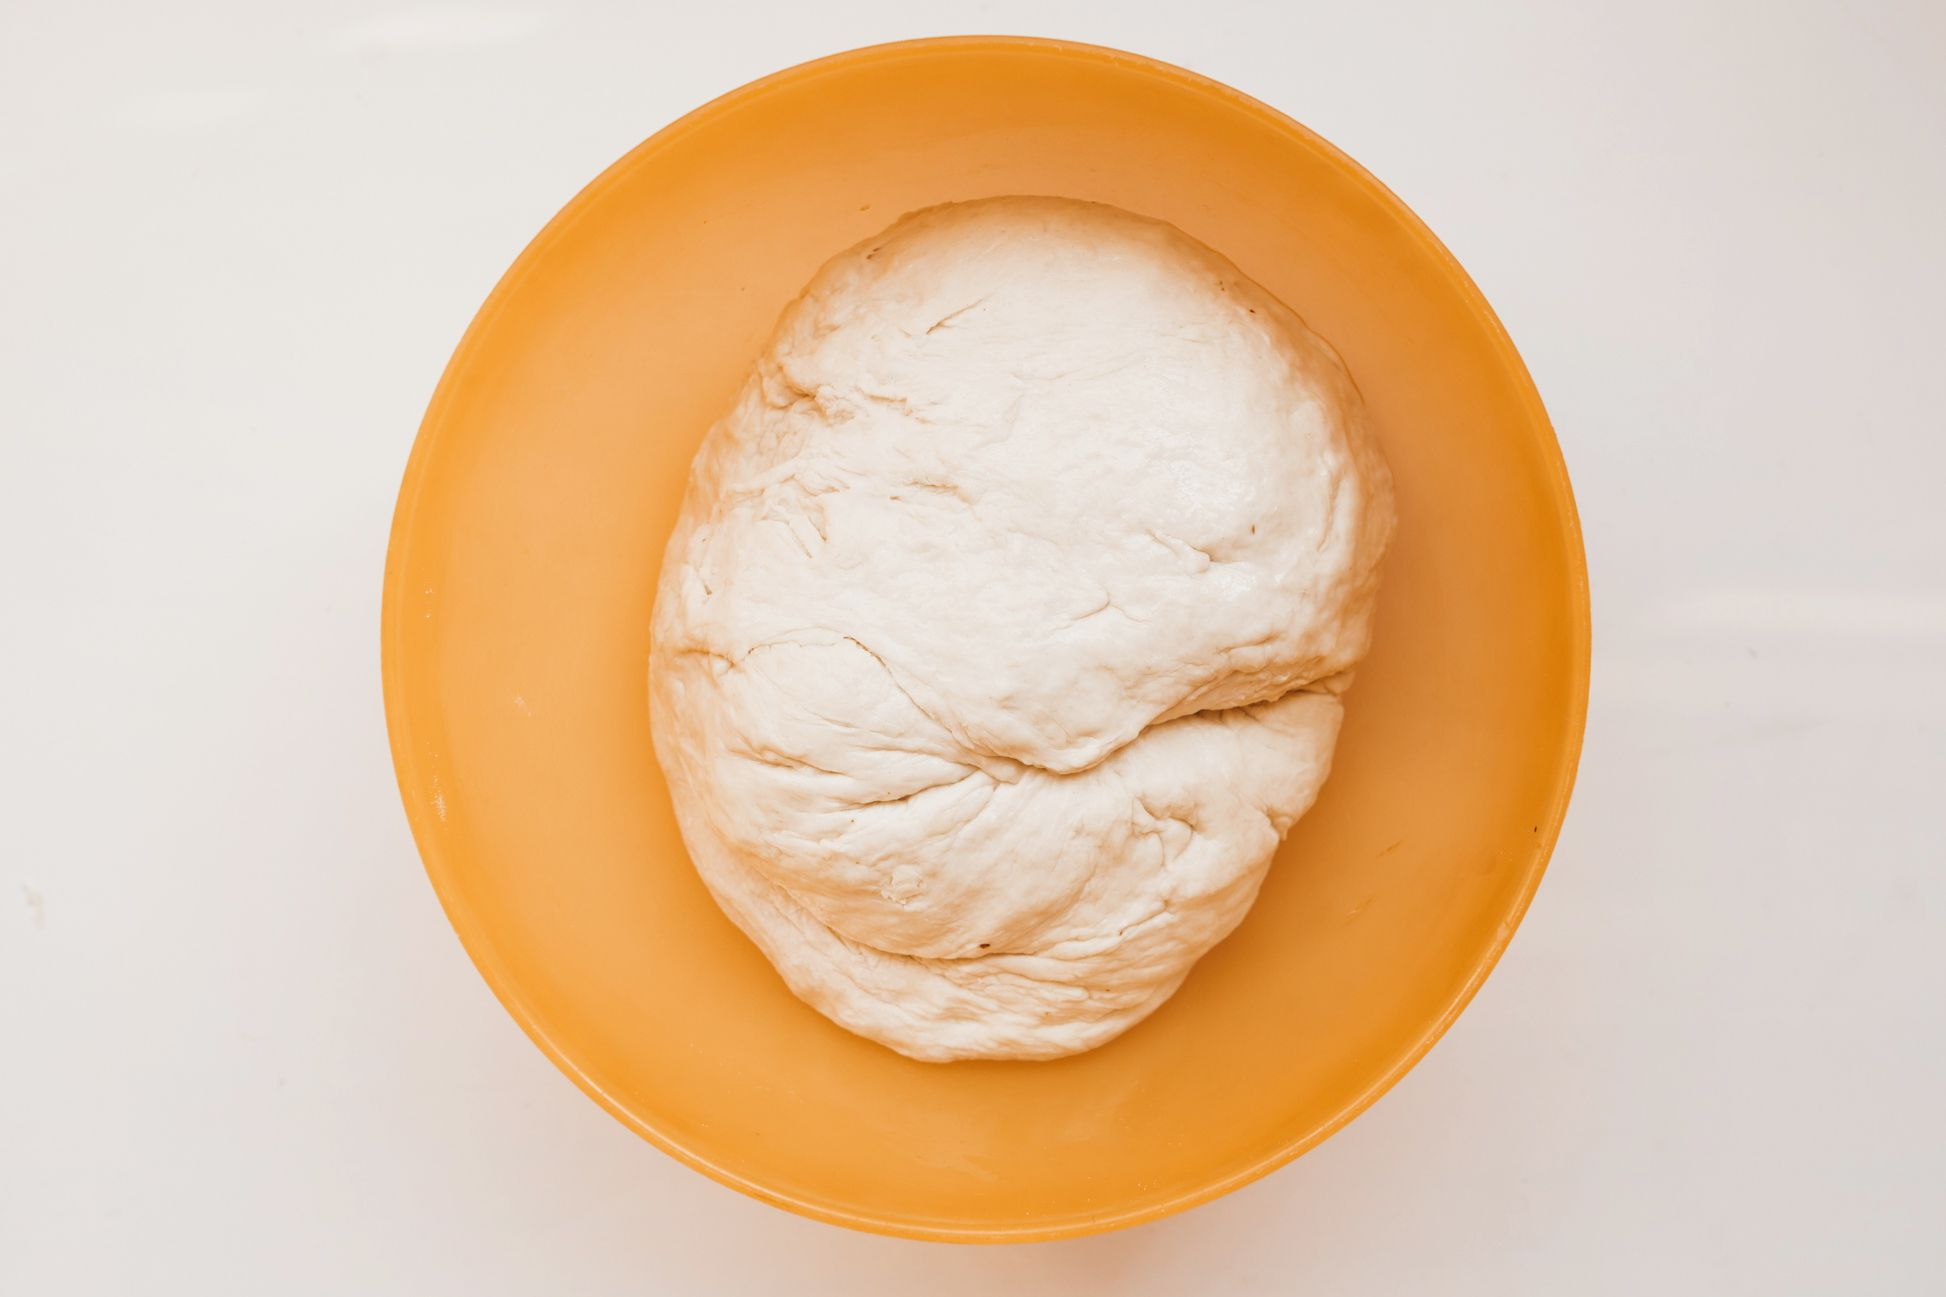 Place dough in greased bowl